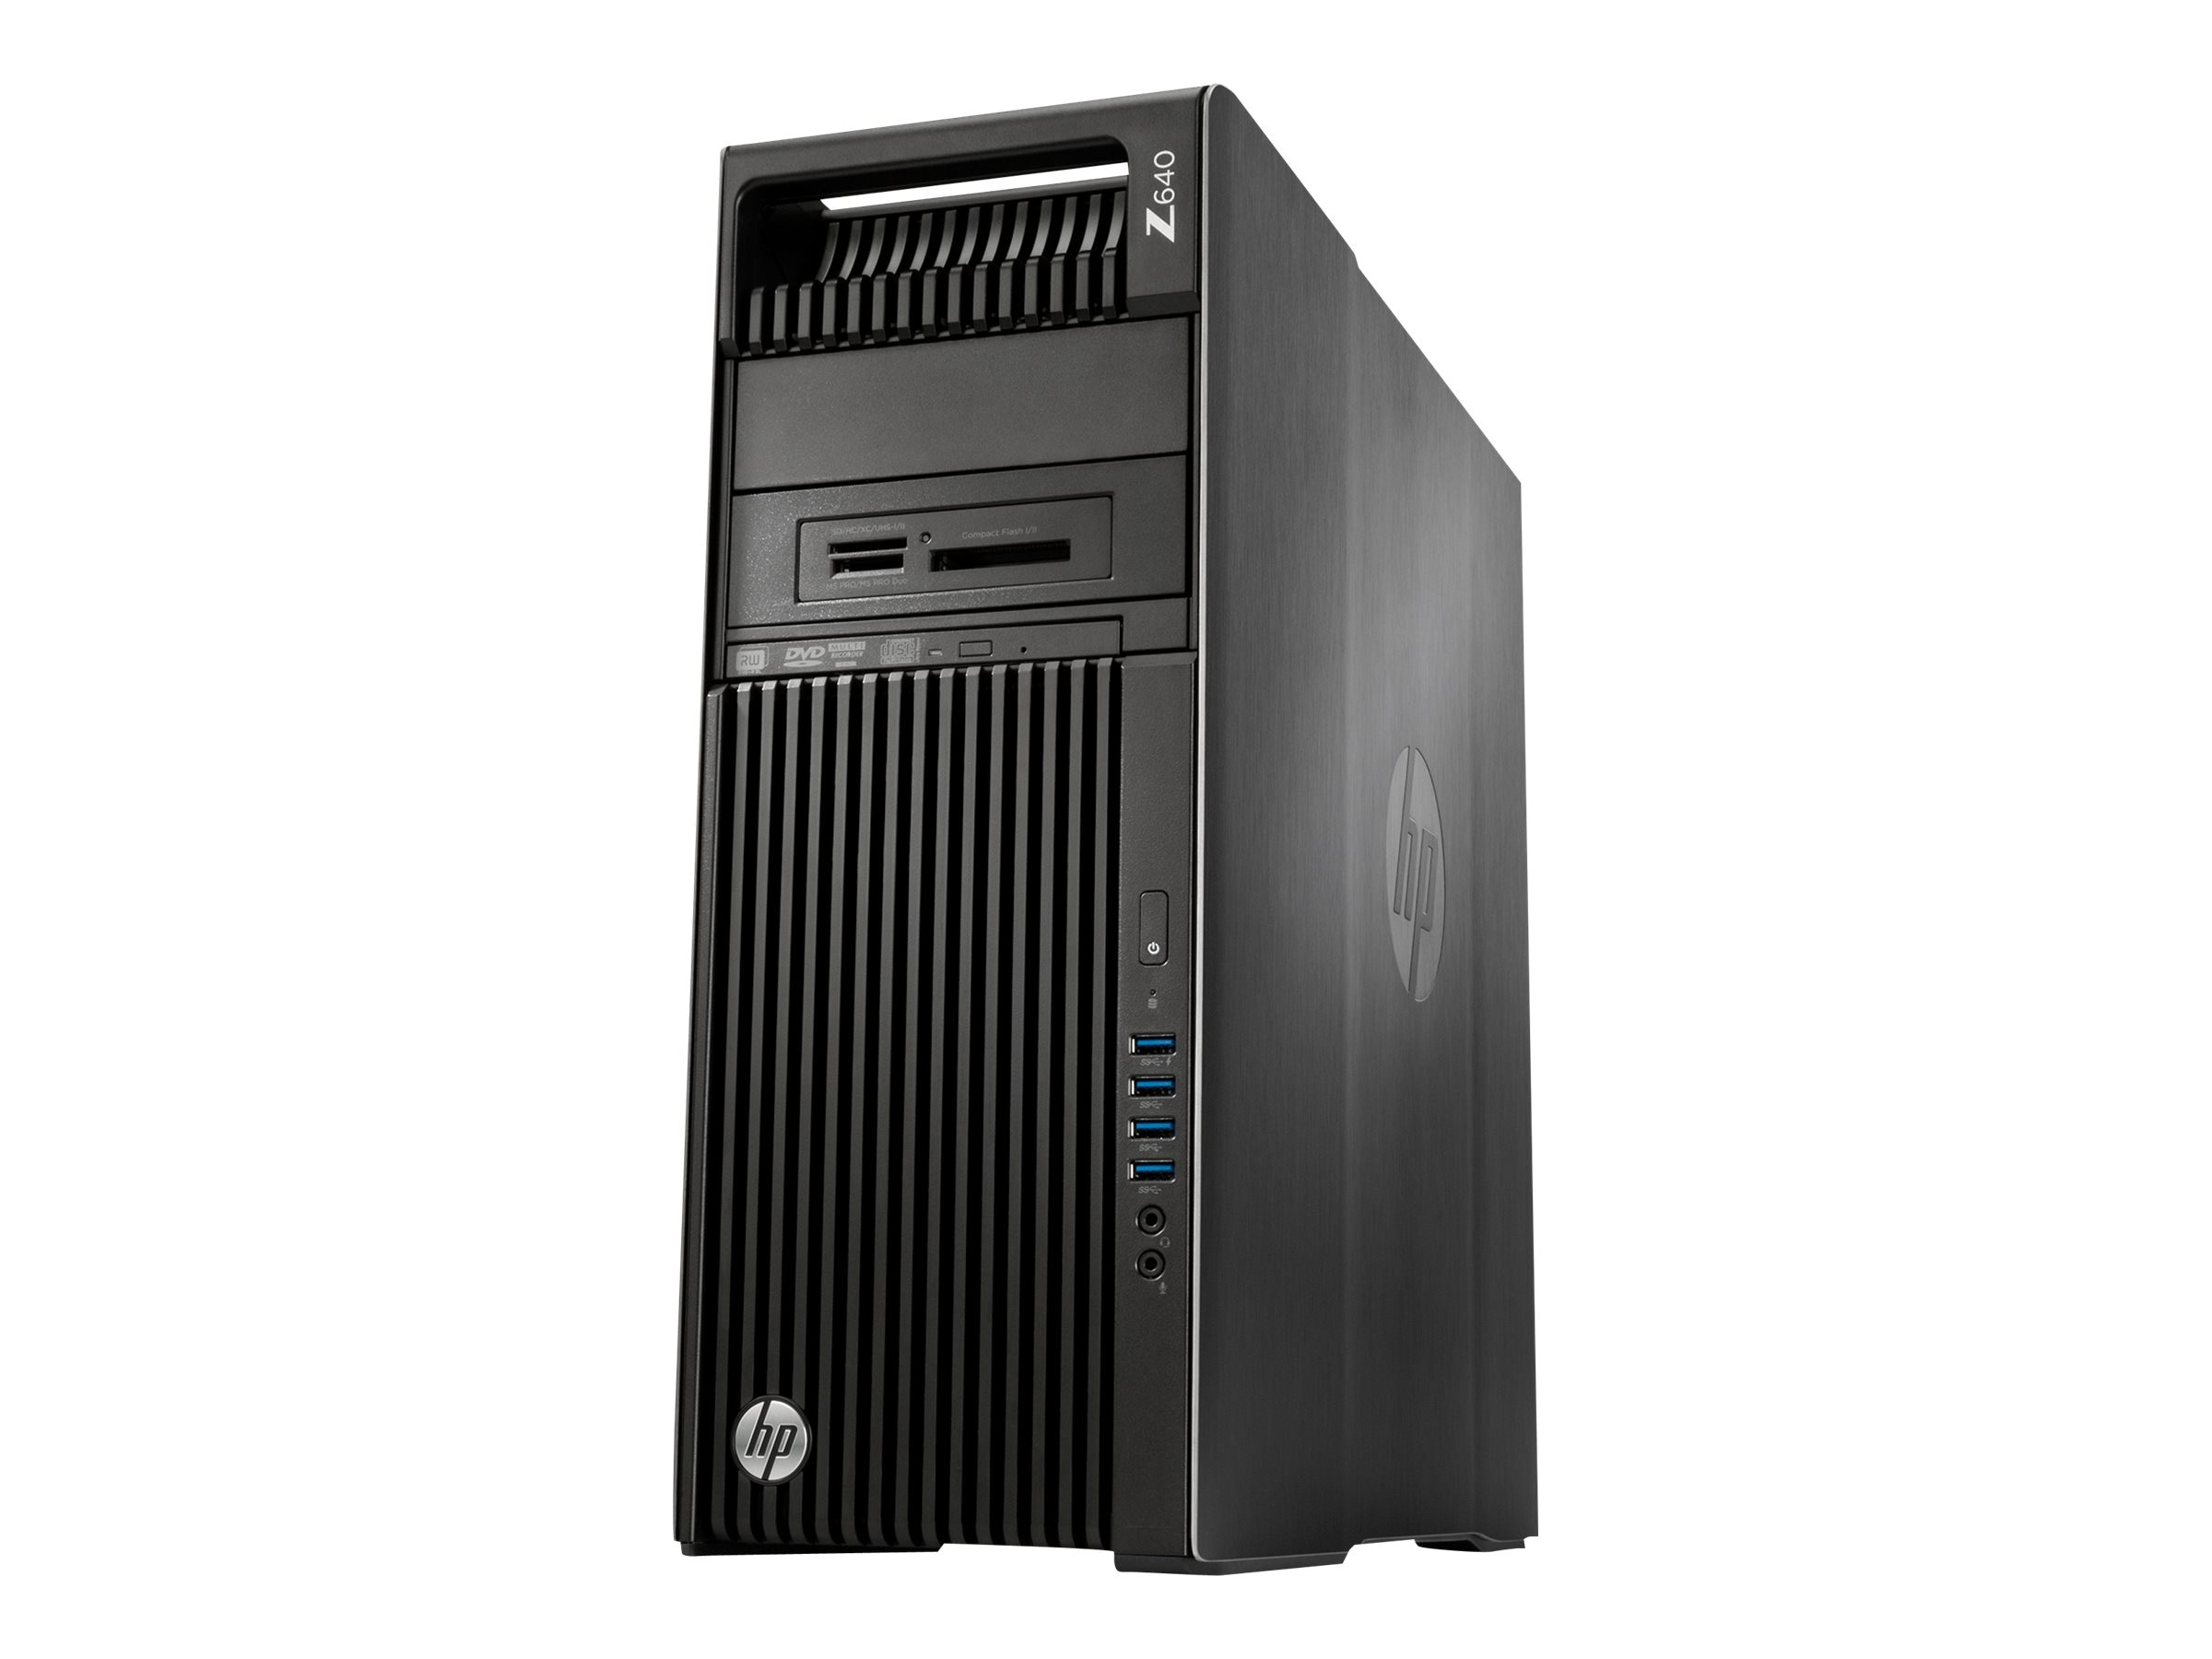 HP Z640 2.1GHz Xeon Microsoft Windows 7 Professional 64-bit Edition   Windows 10 Pro, T4P00UT#ABA